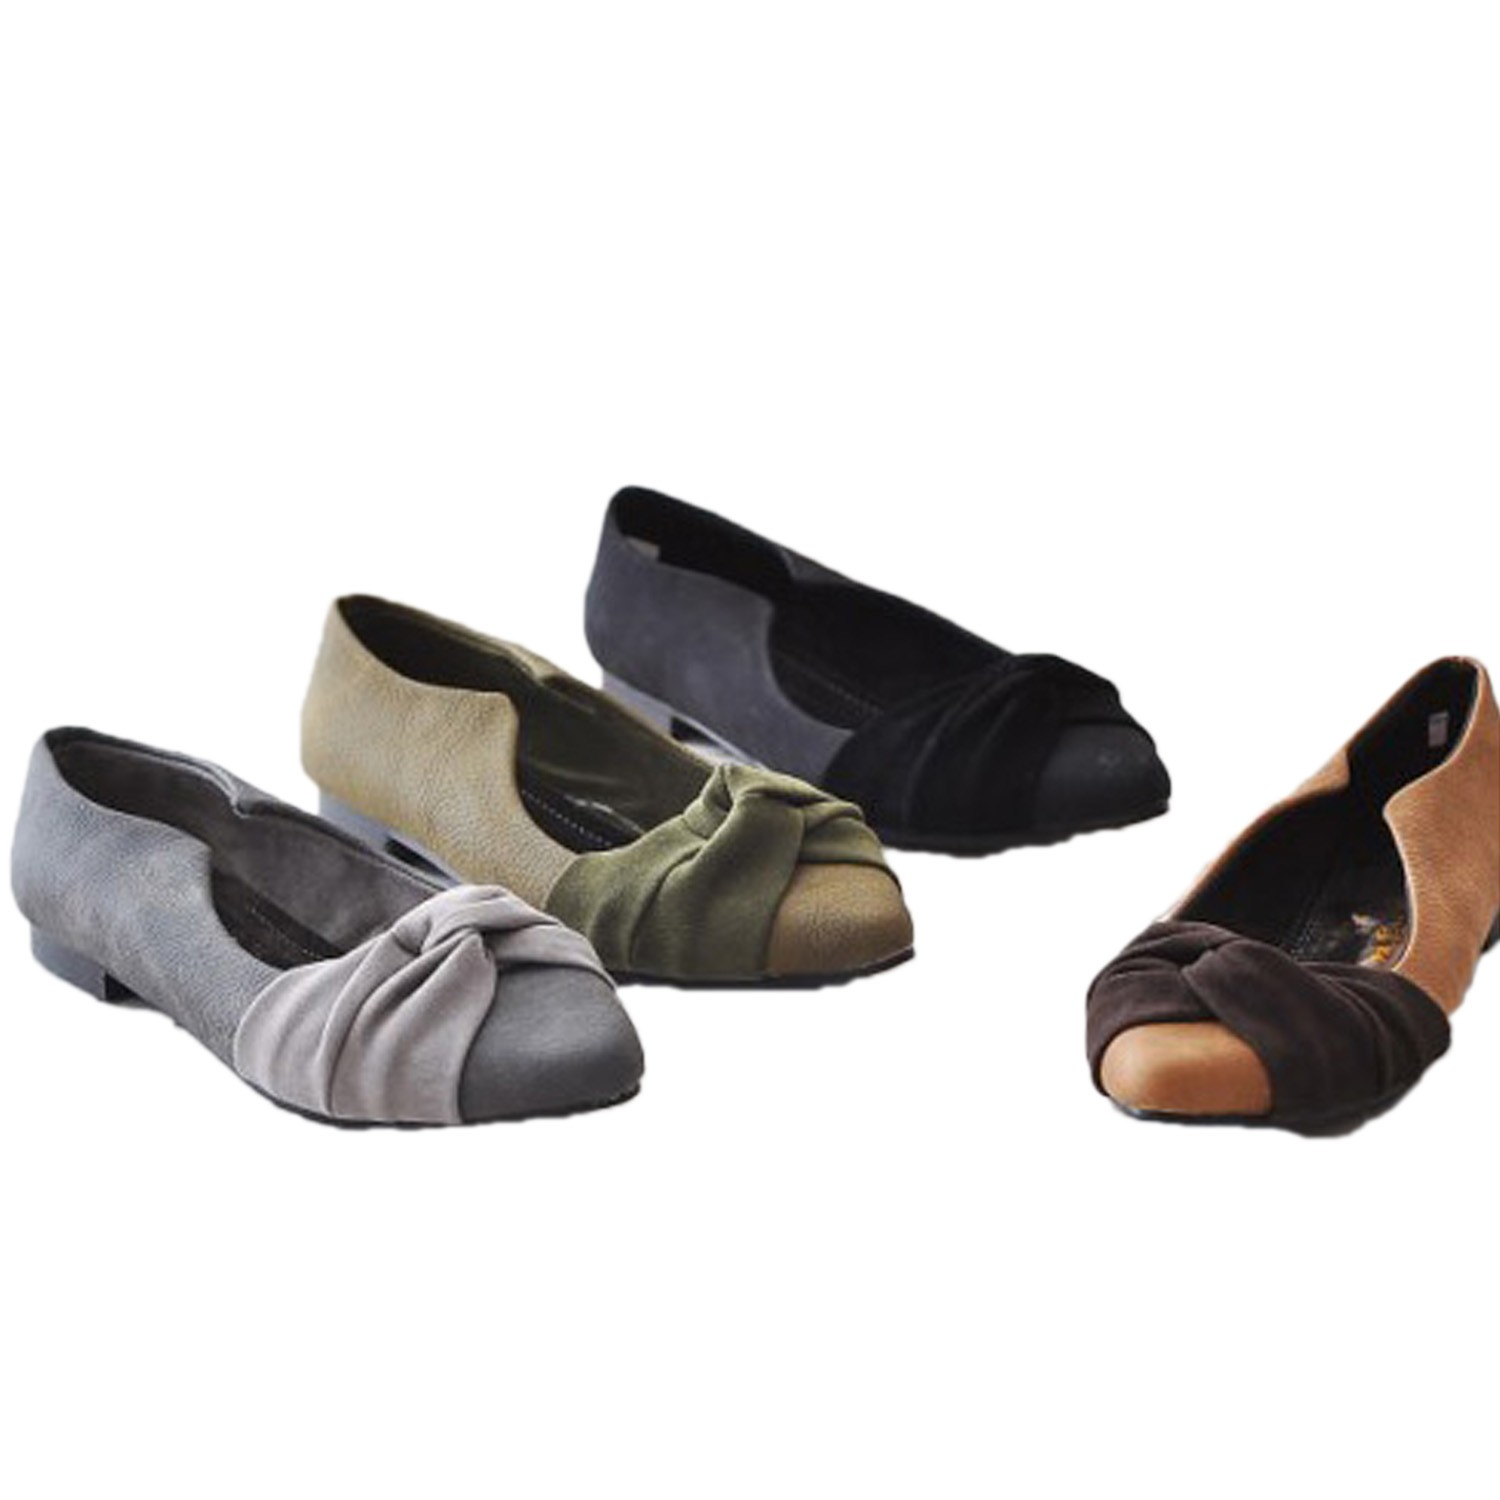 Faux Suede Two Tone Flat Ballet Shoes - SF01#